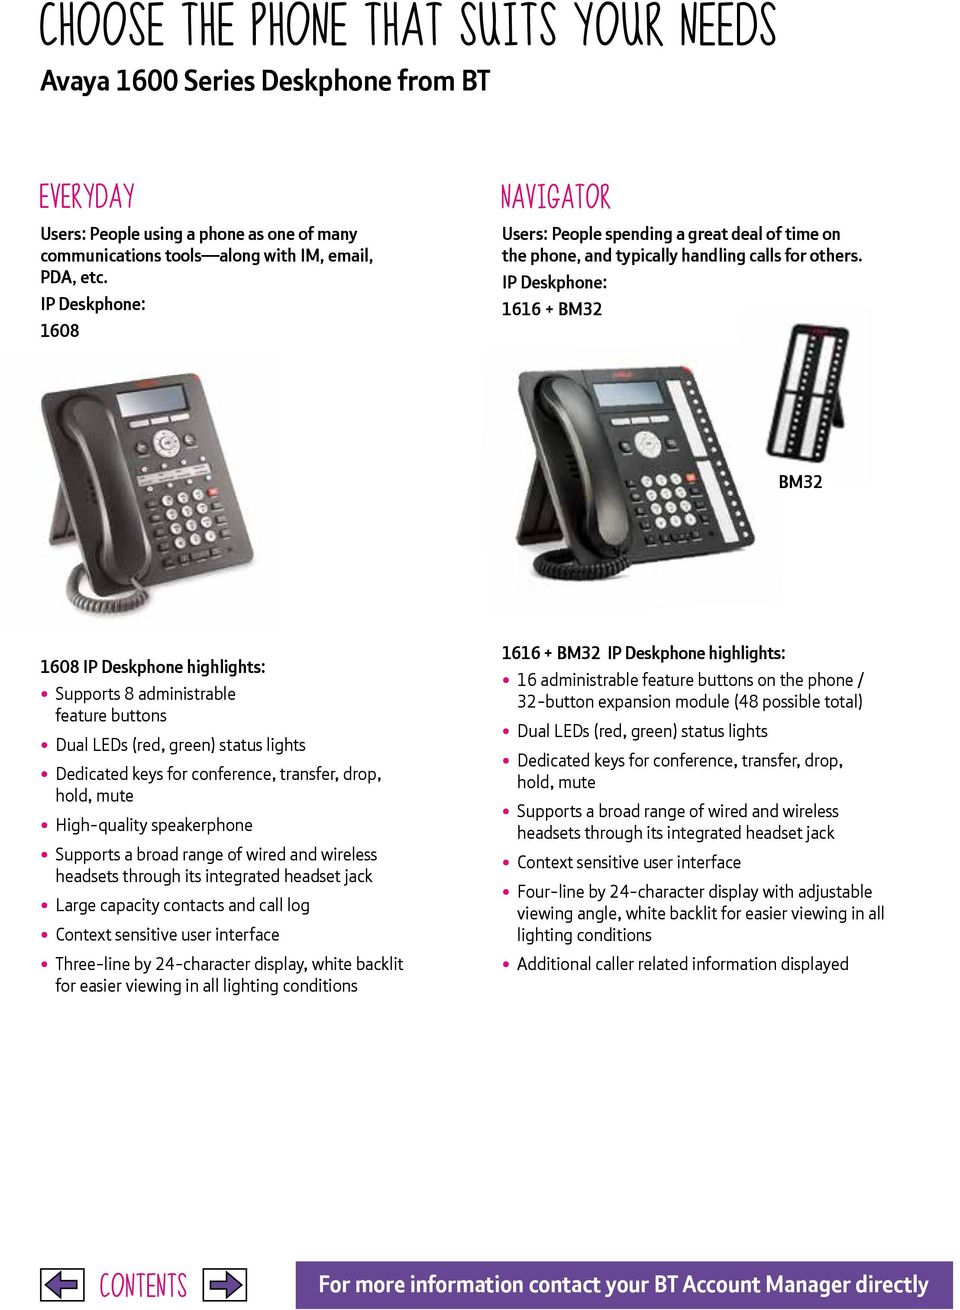 IP Deskphone: 1616 + BM32 BM32 1608 IP Deskphone highlights: Supports 8 administrable feature buttons Dedicated keys for conference, transfer, drop, hold, mute Large capacity contacts and call log